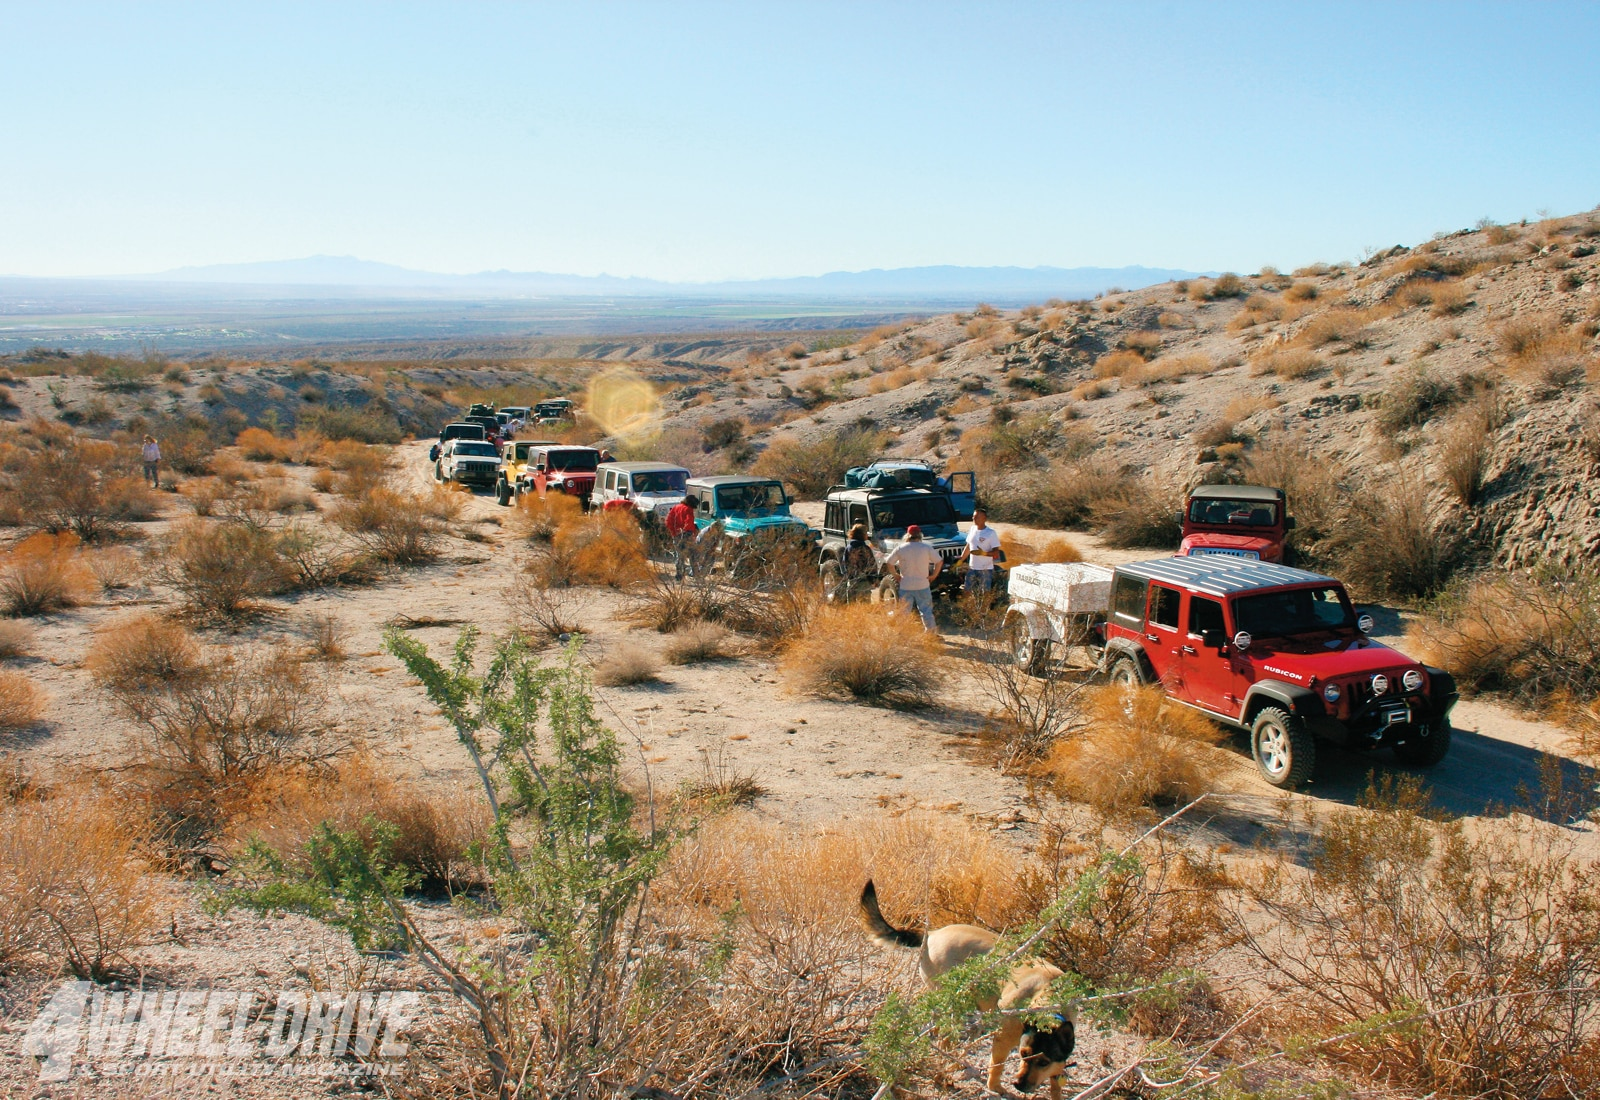 1003 4wd 04+mojave road+drivers meeting